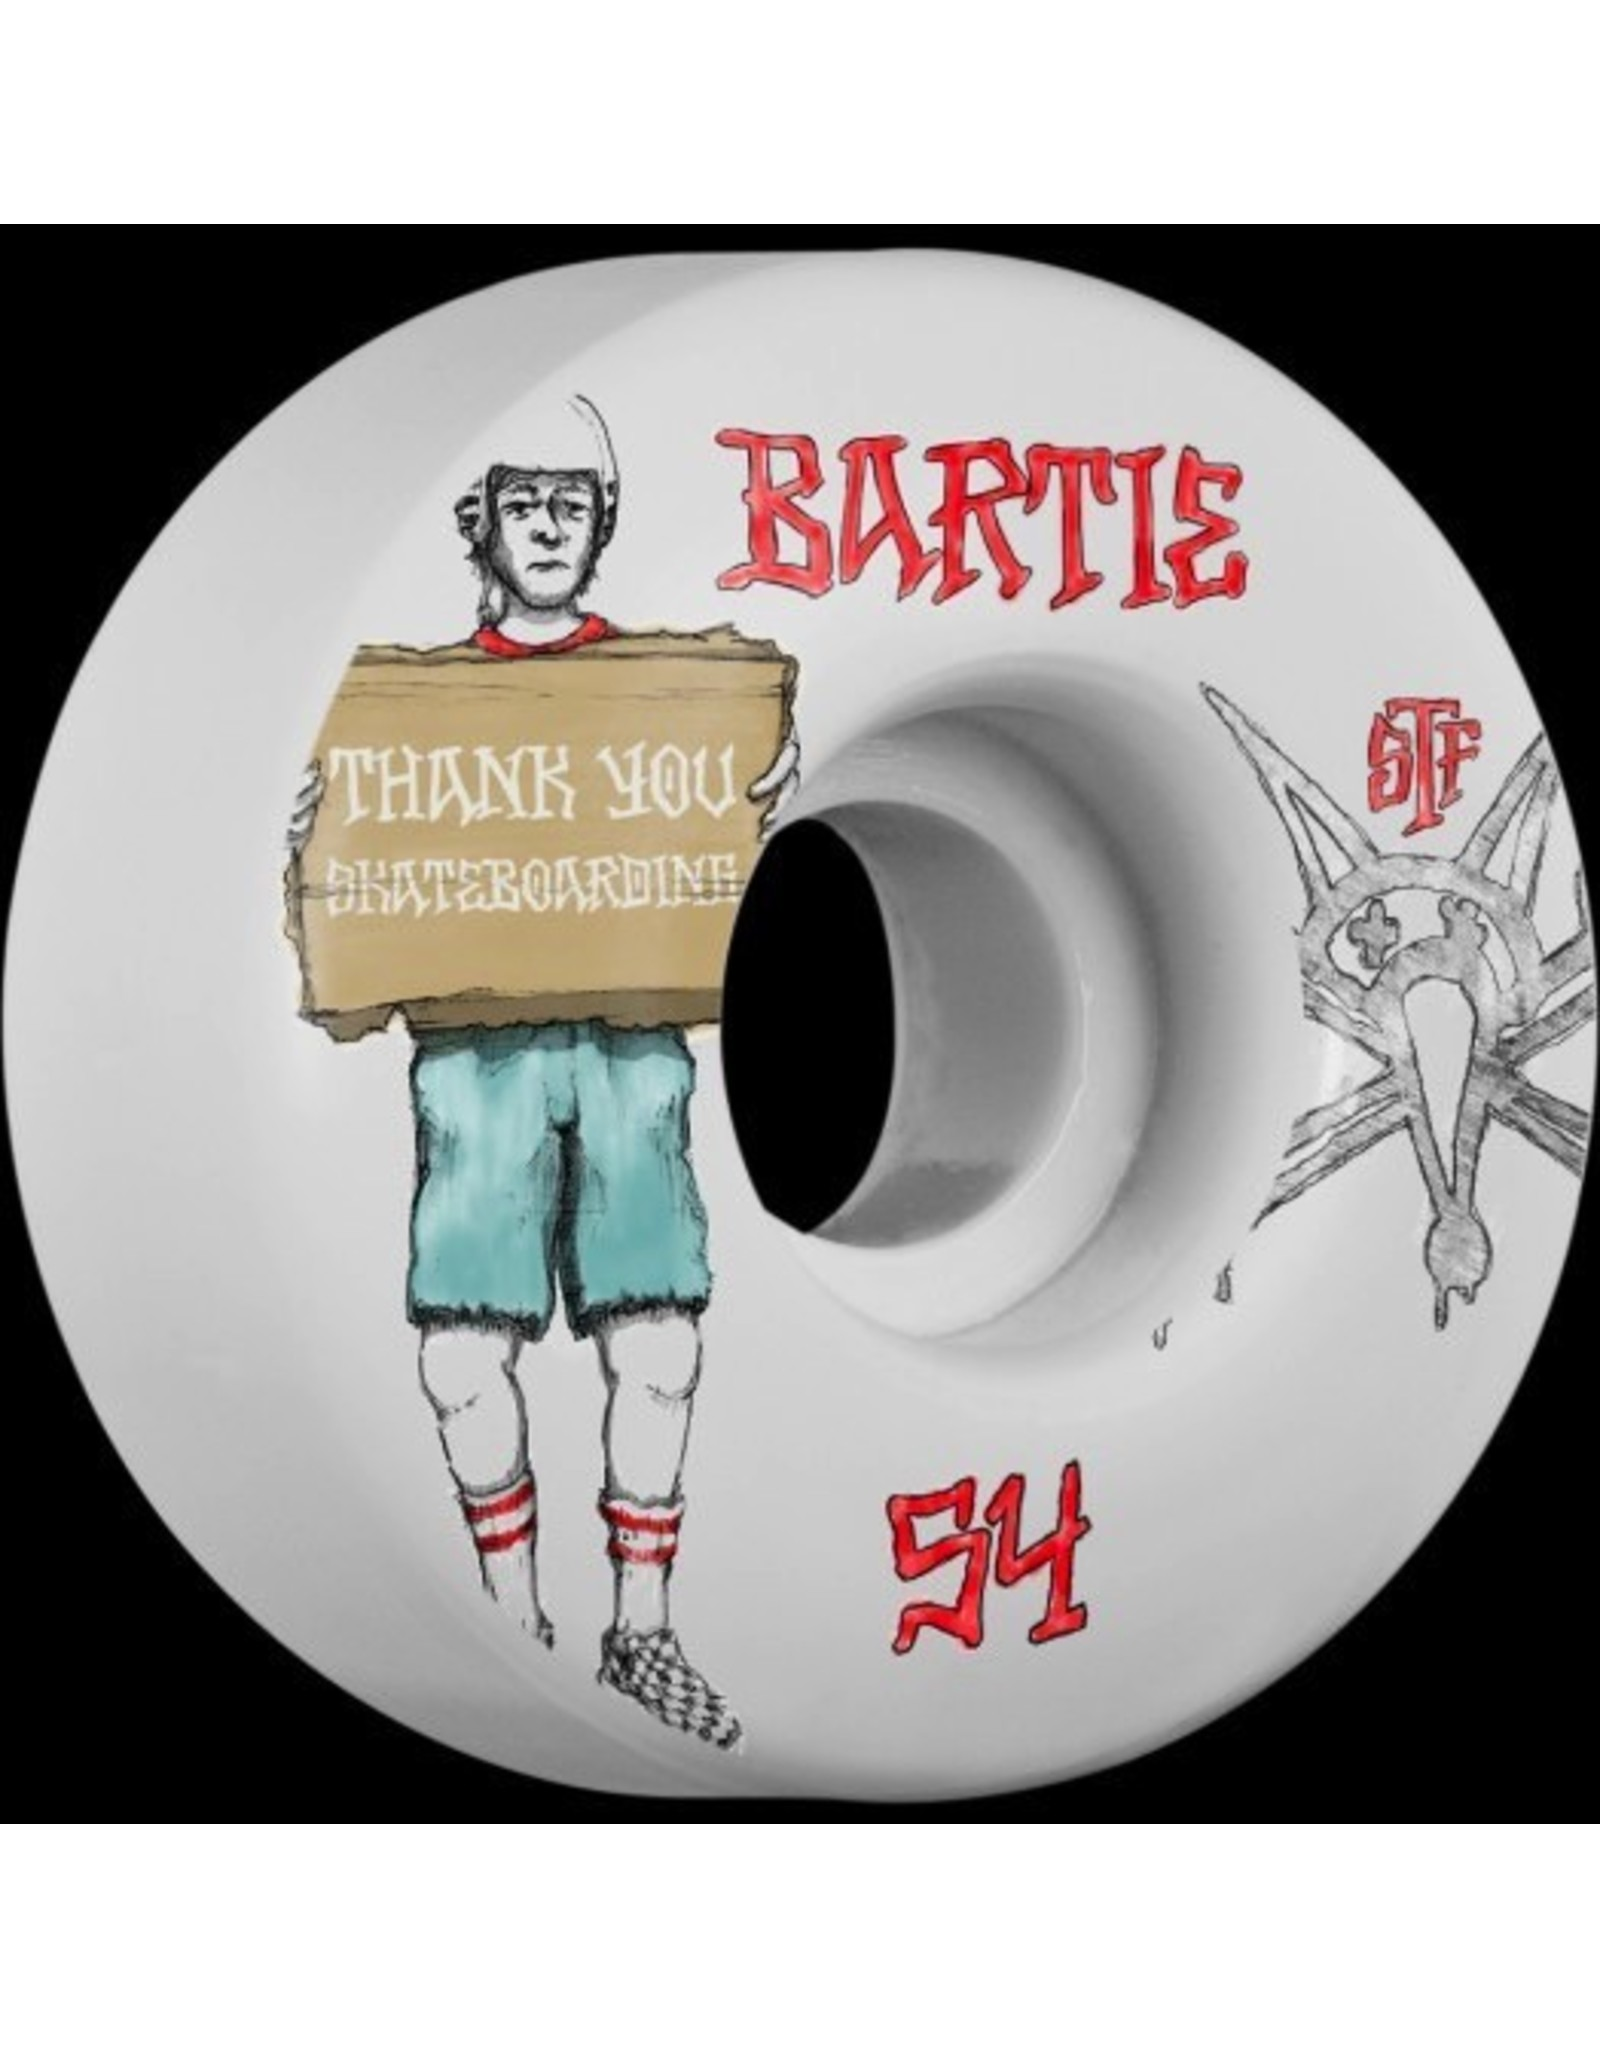 BONES BARTIE STF THANK YOU 54MM